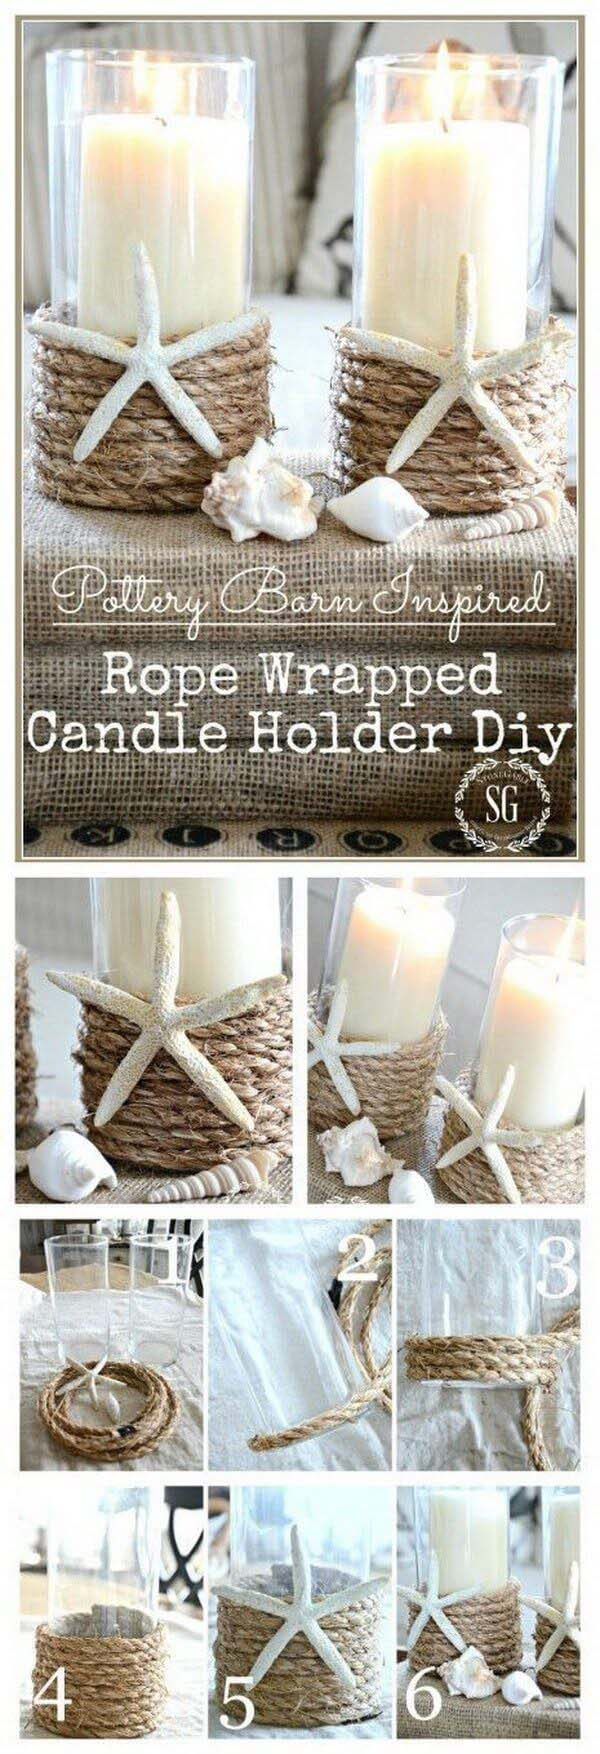 Rope Wrapped Candleholder #diy #seashell #decor #decorhomeideas